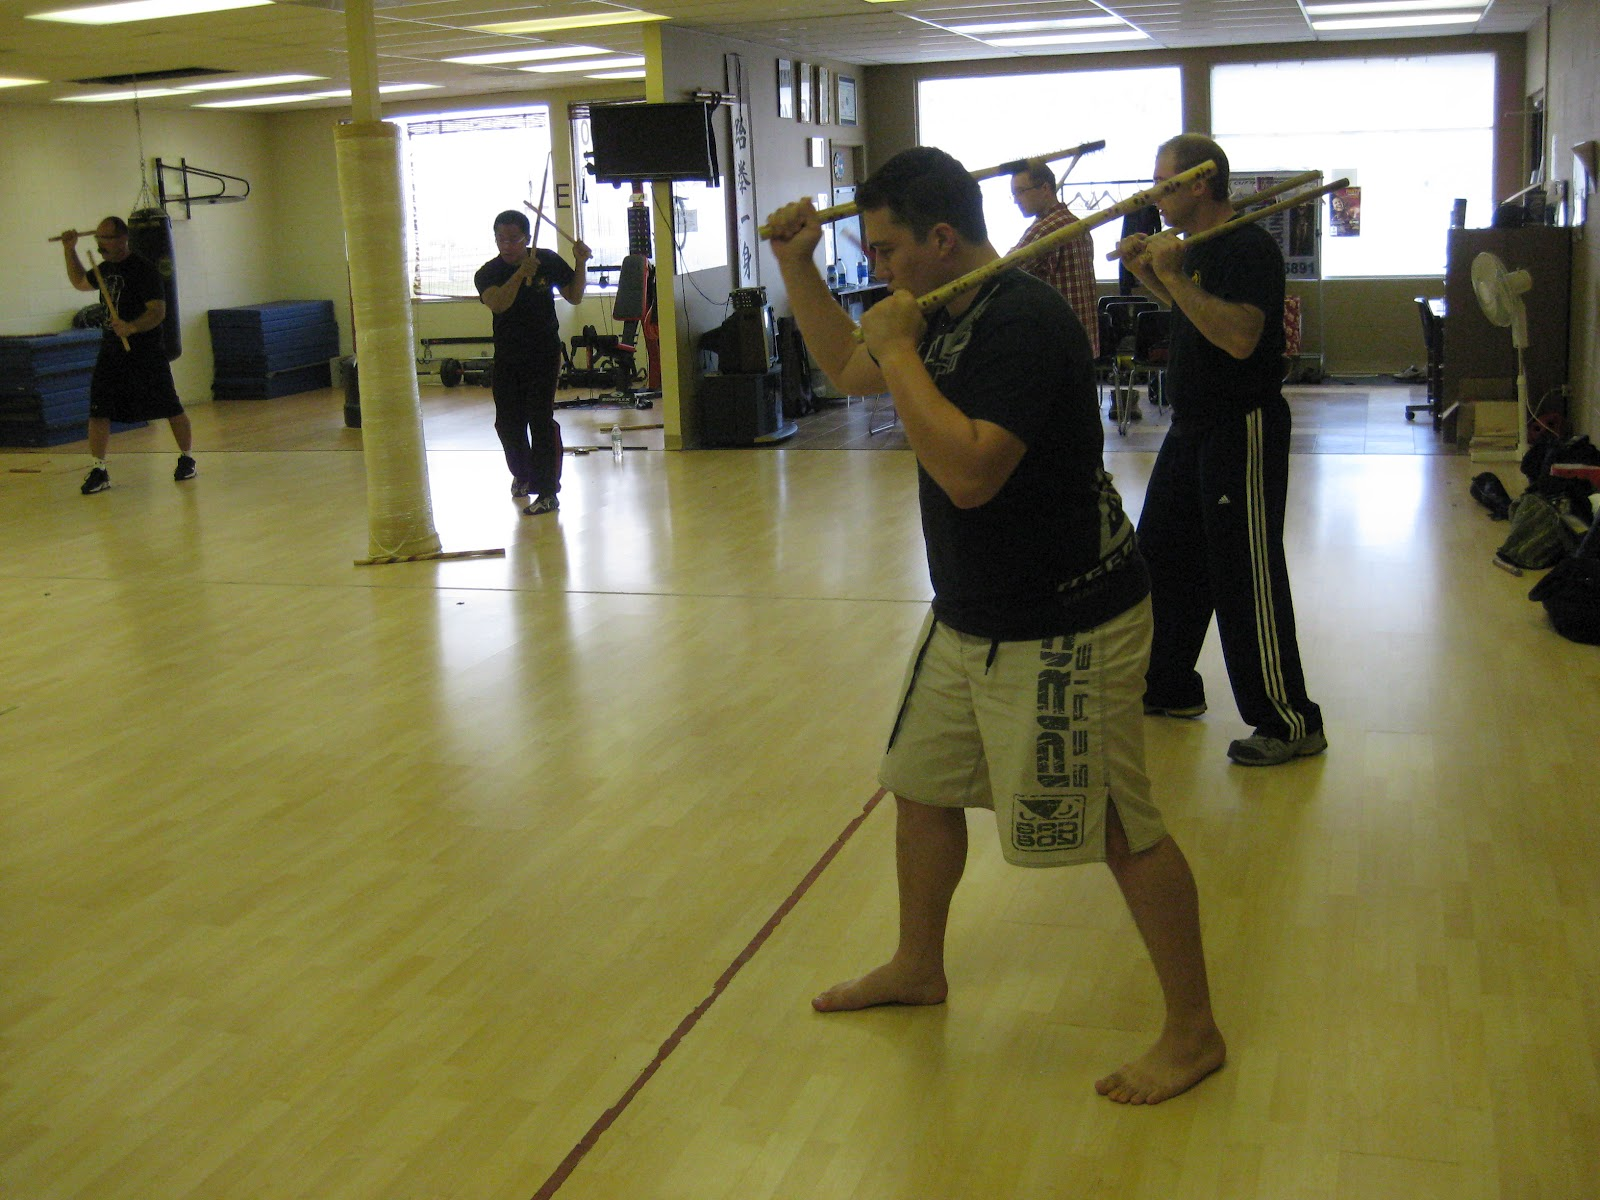 dance 4 peace seminar a review Sample workshop evaluation questionnaire 6 the activities in this workshop gave me sufficient 1 2 3 4 5 n/a practice and feedback.